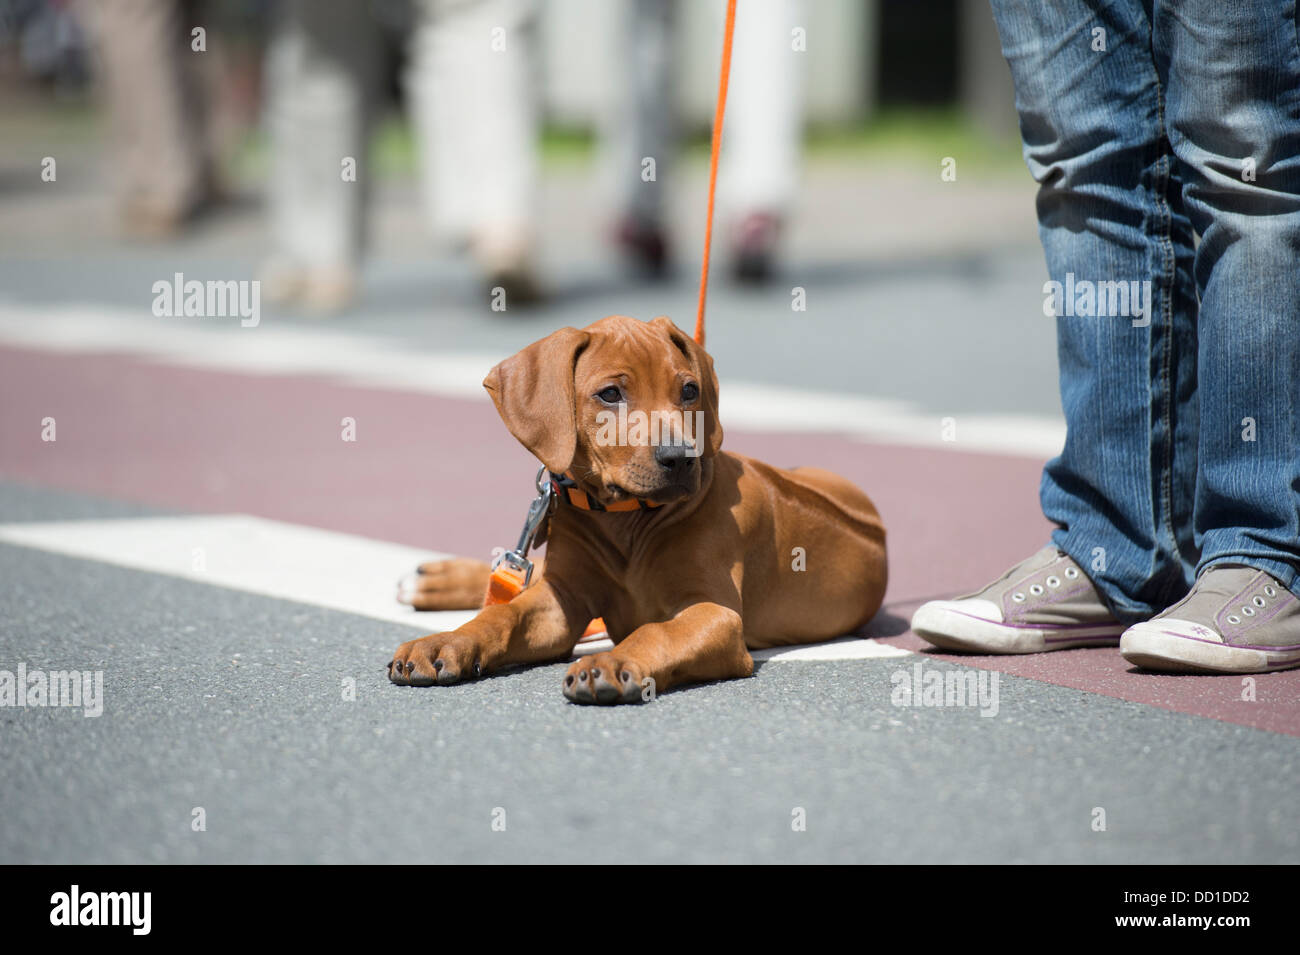 Rhodesian Ridgeback Puppy Dog Laying in Street - Stock Image